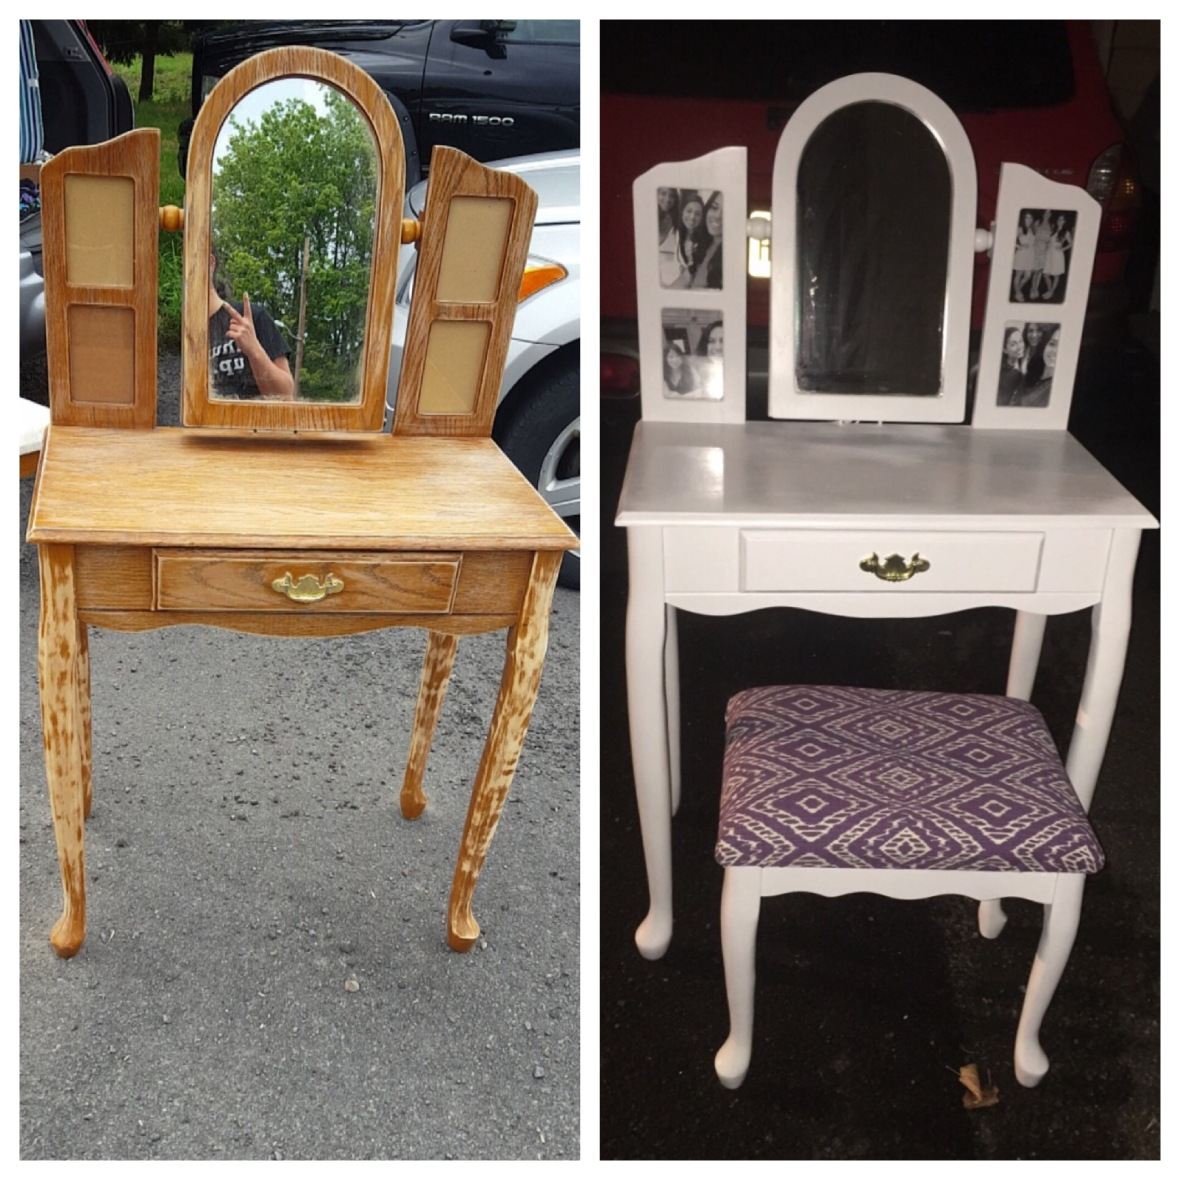 Vanity before and after